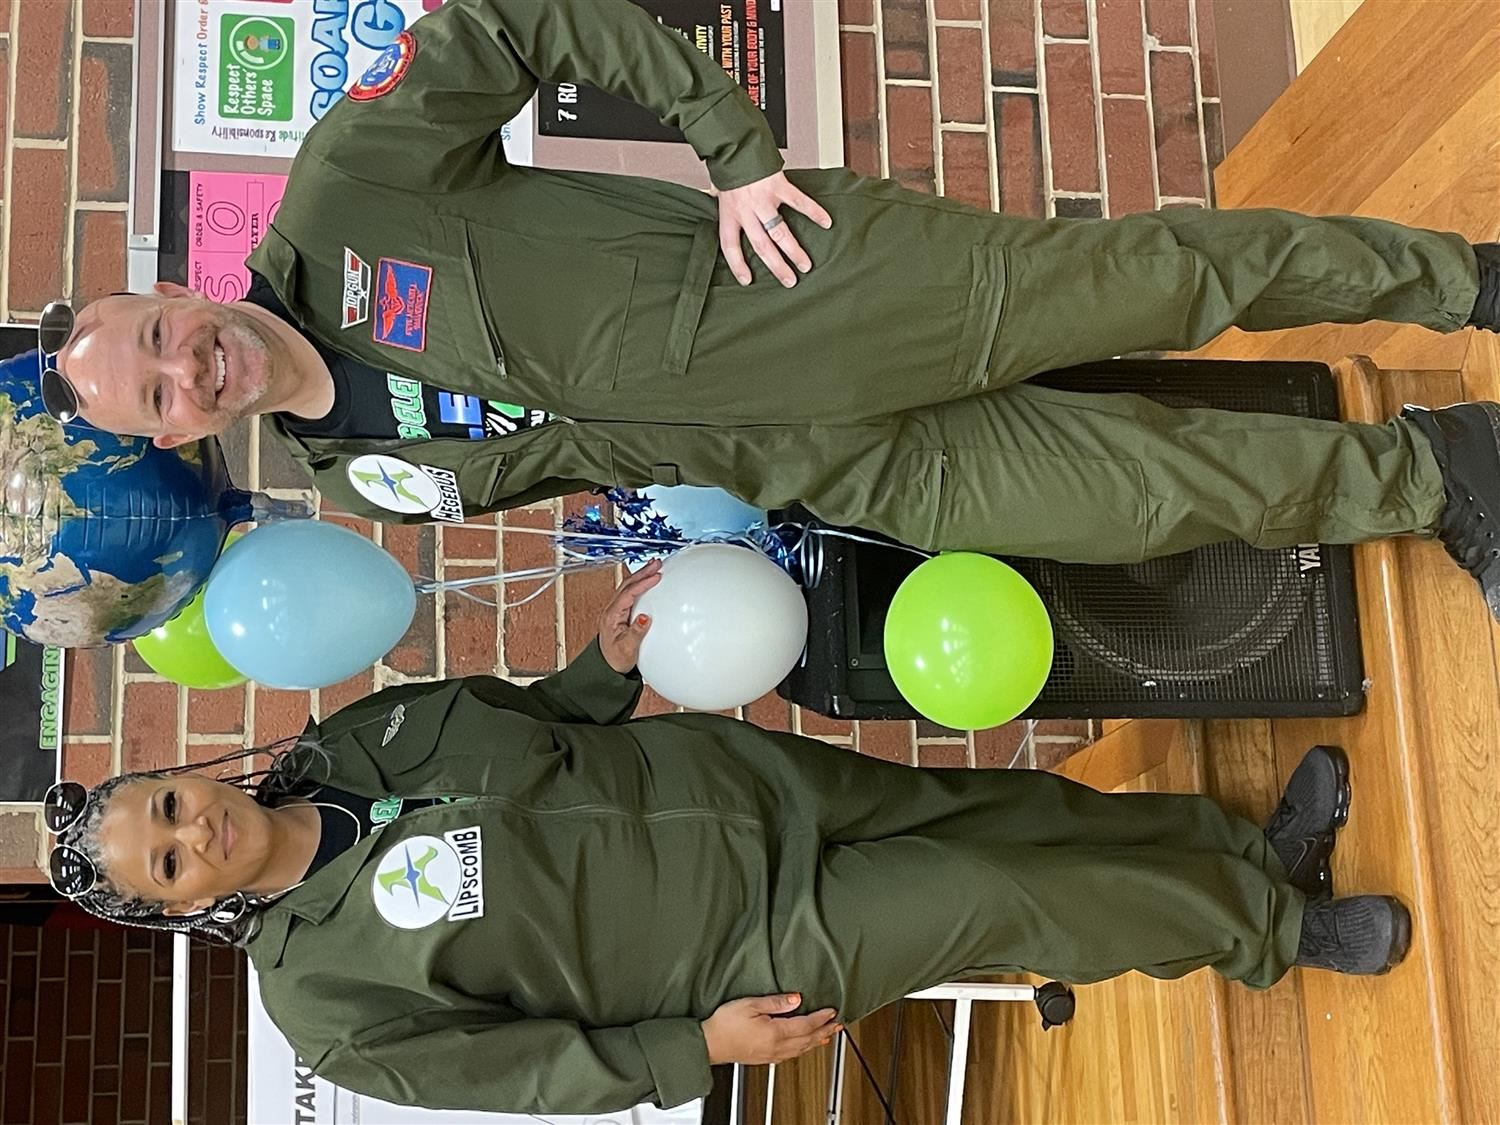 Mrs. Walser and Mr. Hegedus with WCPSS Superintendent Cathy Moore